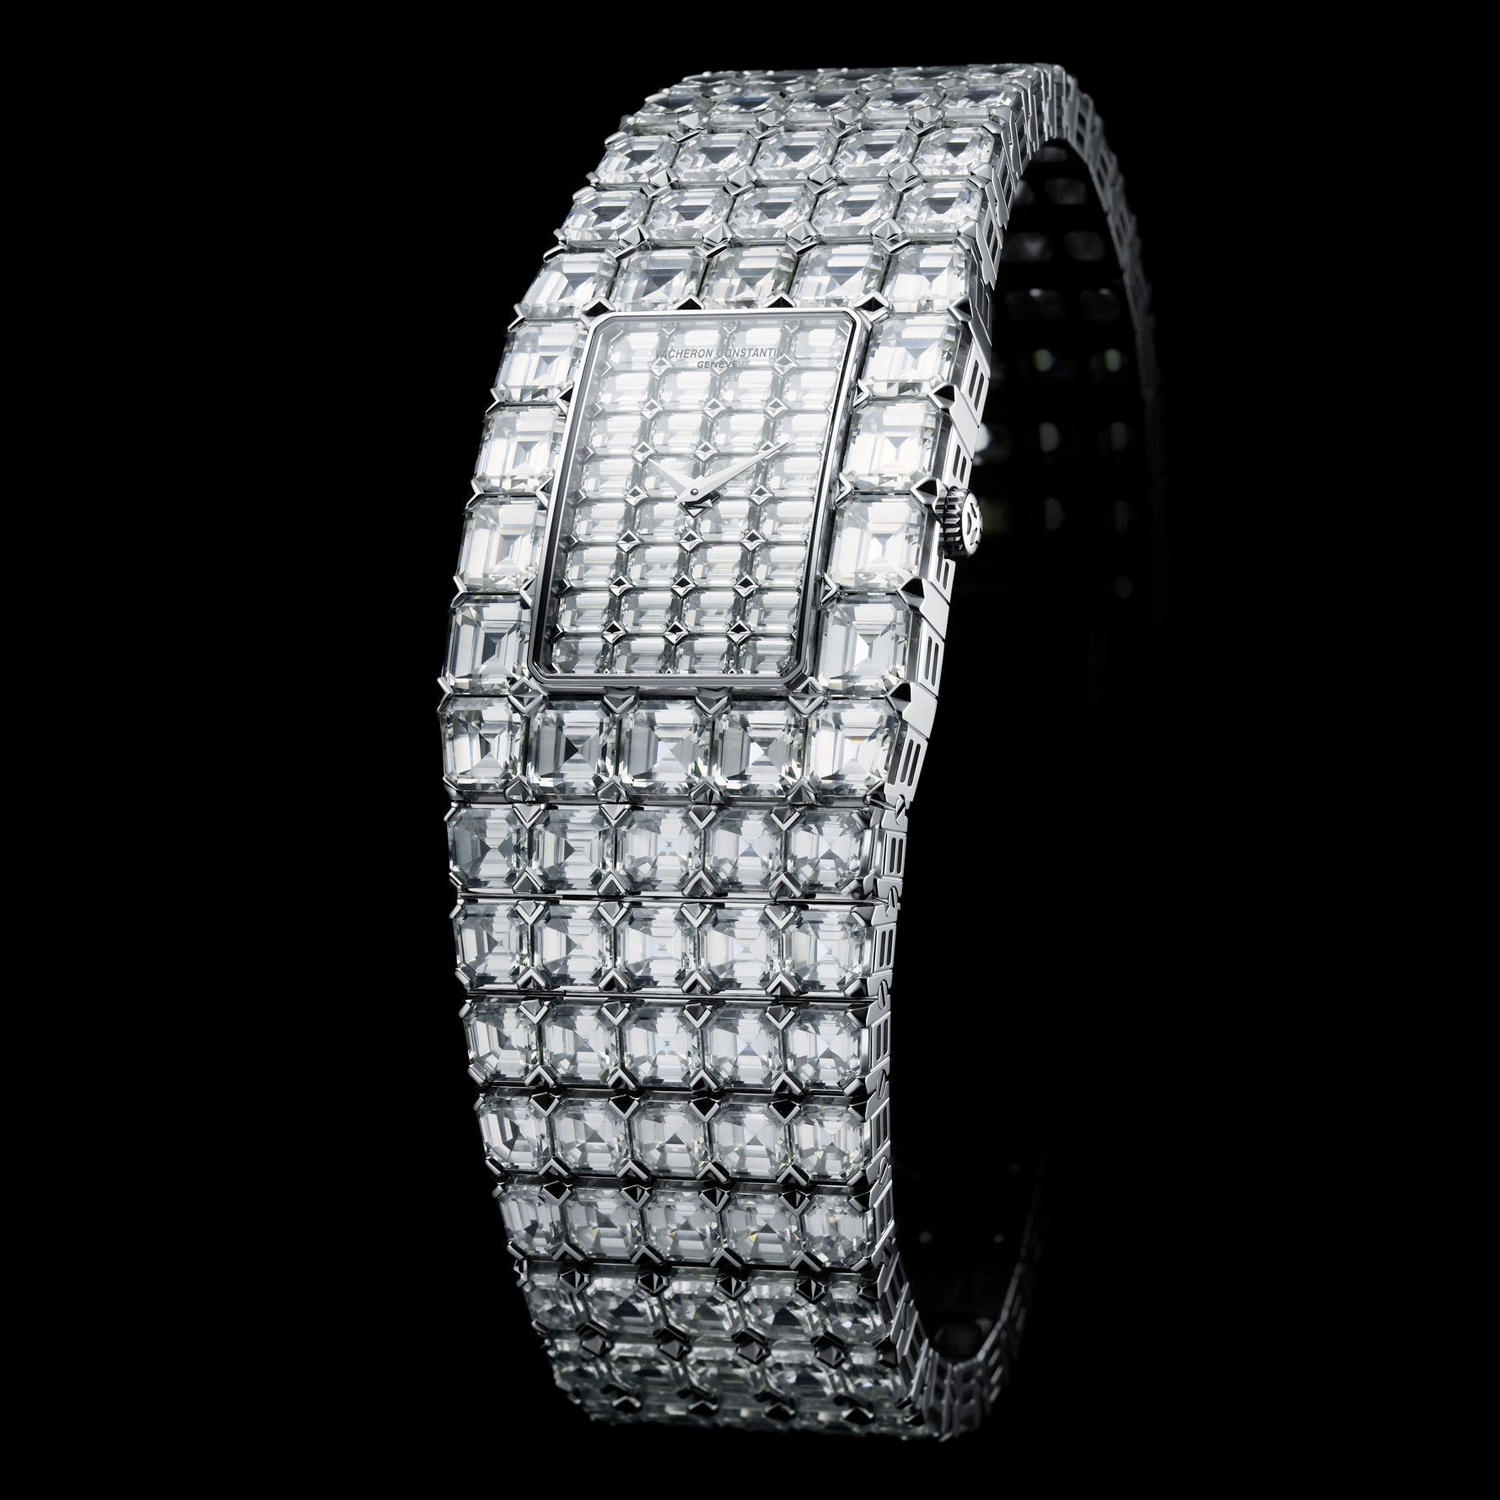 Kallista II/Kallania (WG-Diamond/WG-Diamond/Bracelet)